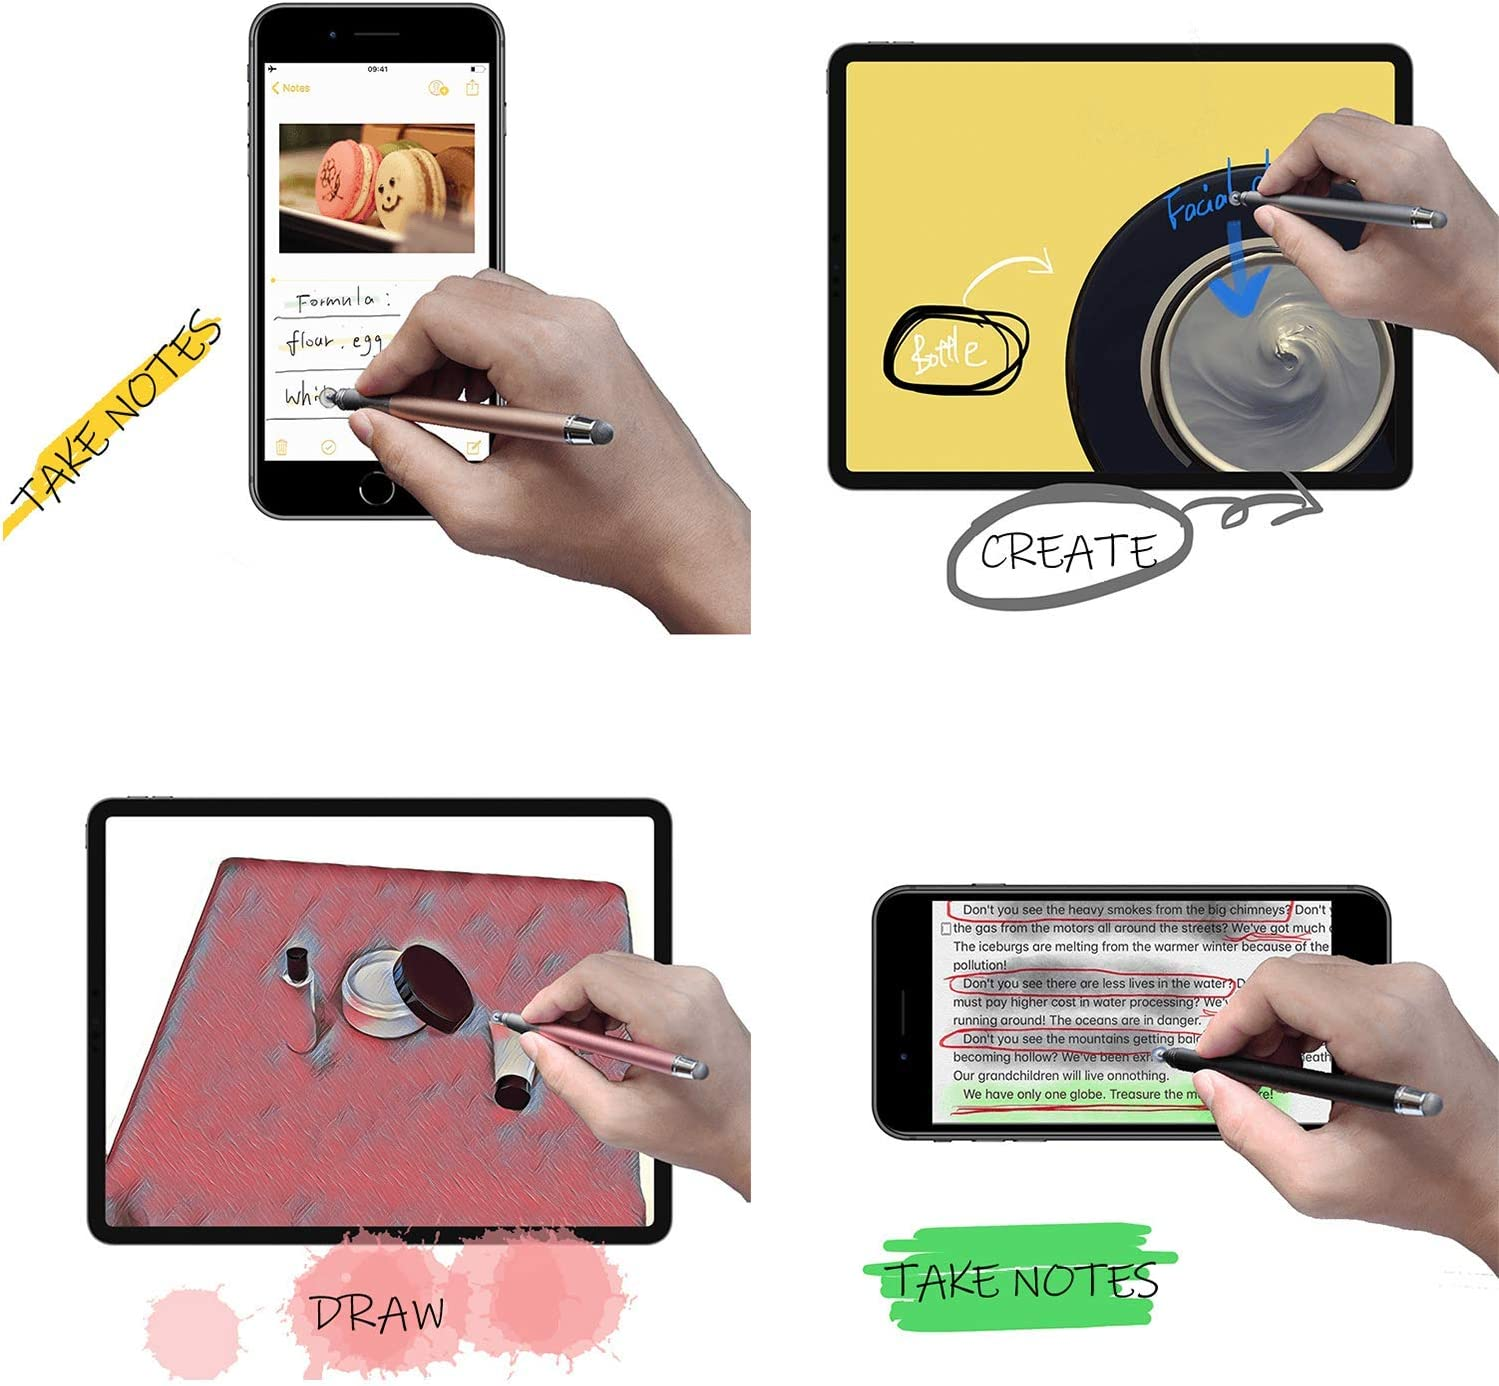 Disc /& Fiber Tip 2 in 1 for iPad Kindle Gold High Sensitivity and Precision koovin Capacitive Stylus Pens iPhone,Android Phone,Android Tablet